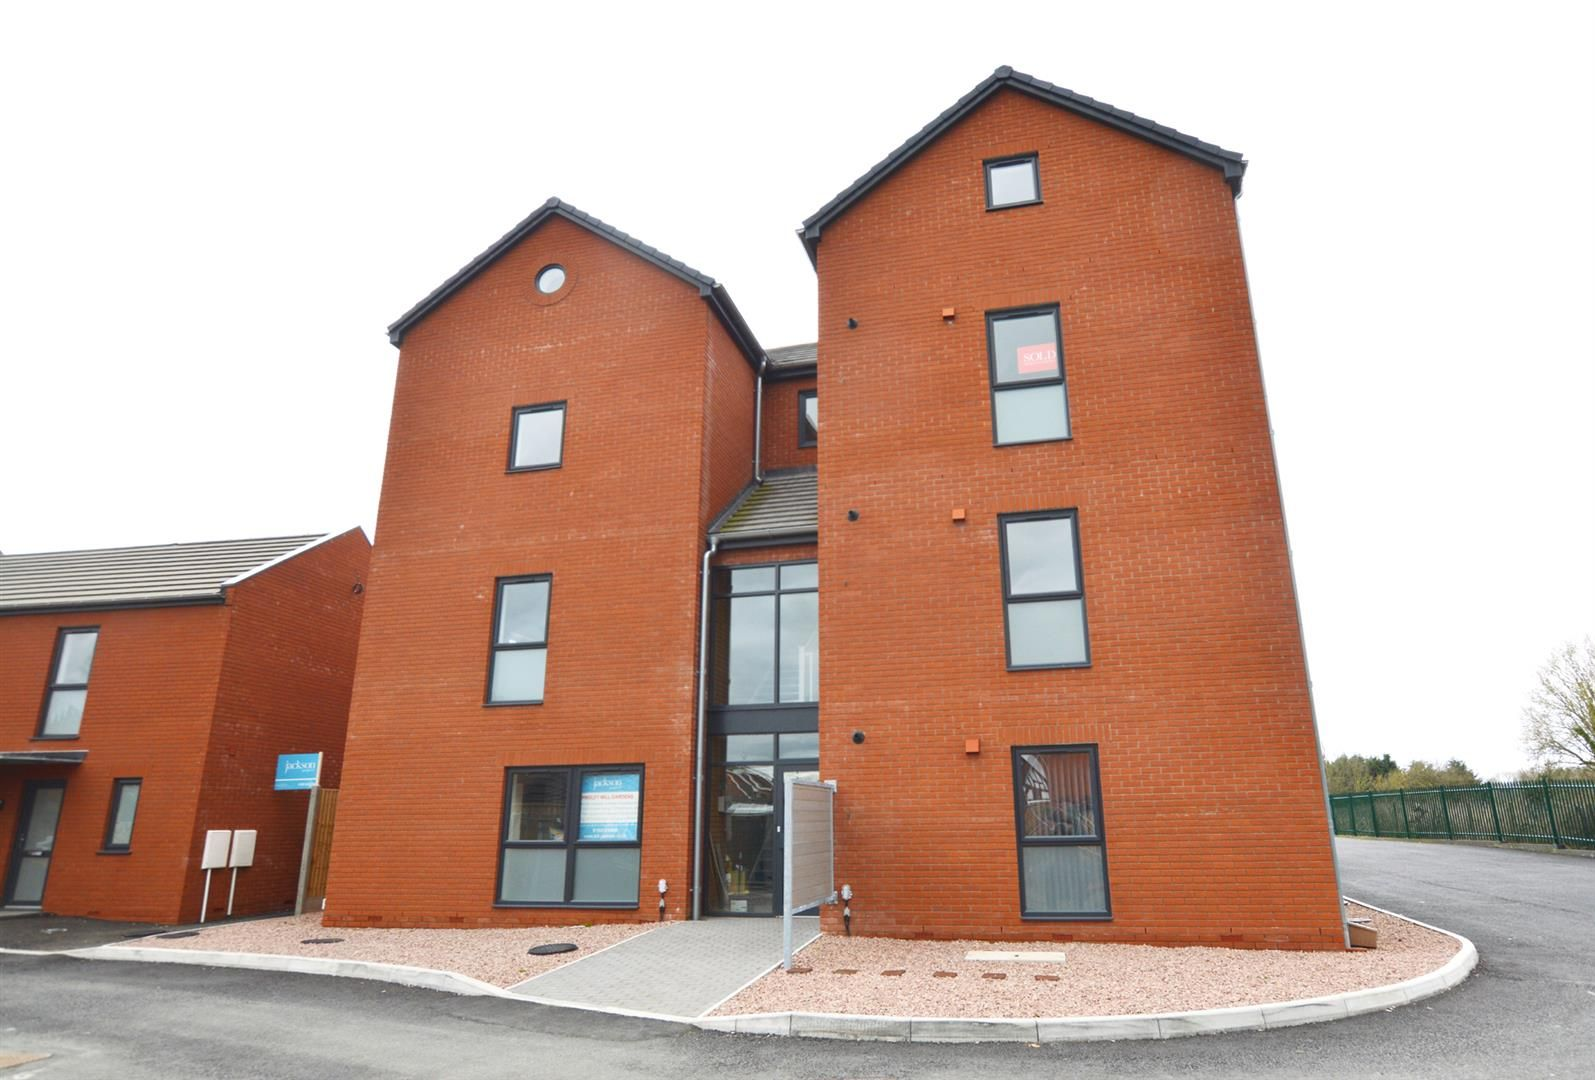 2 bed apartment for sale in Leominster, HR6